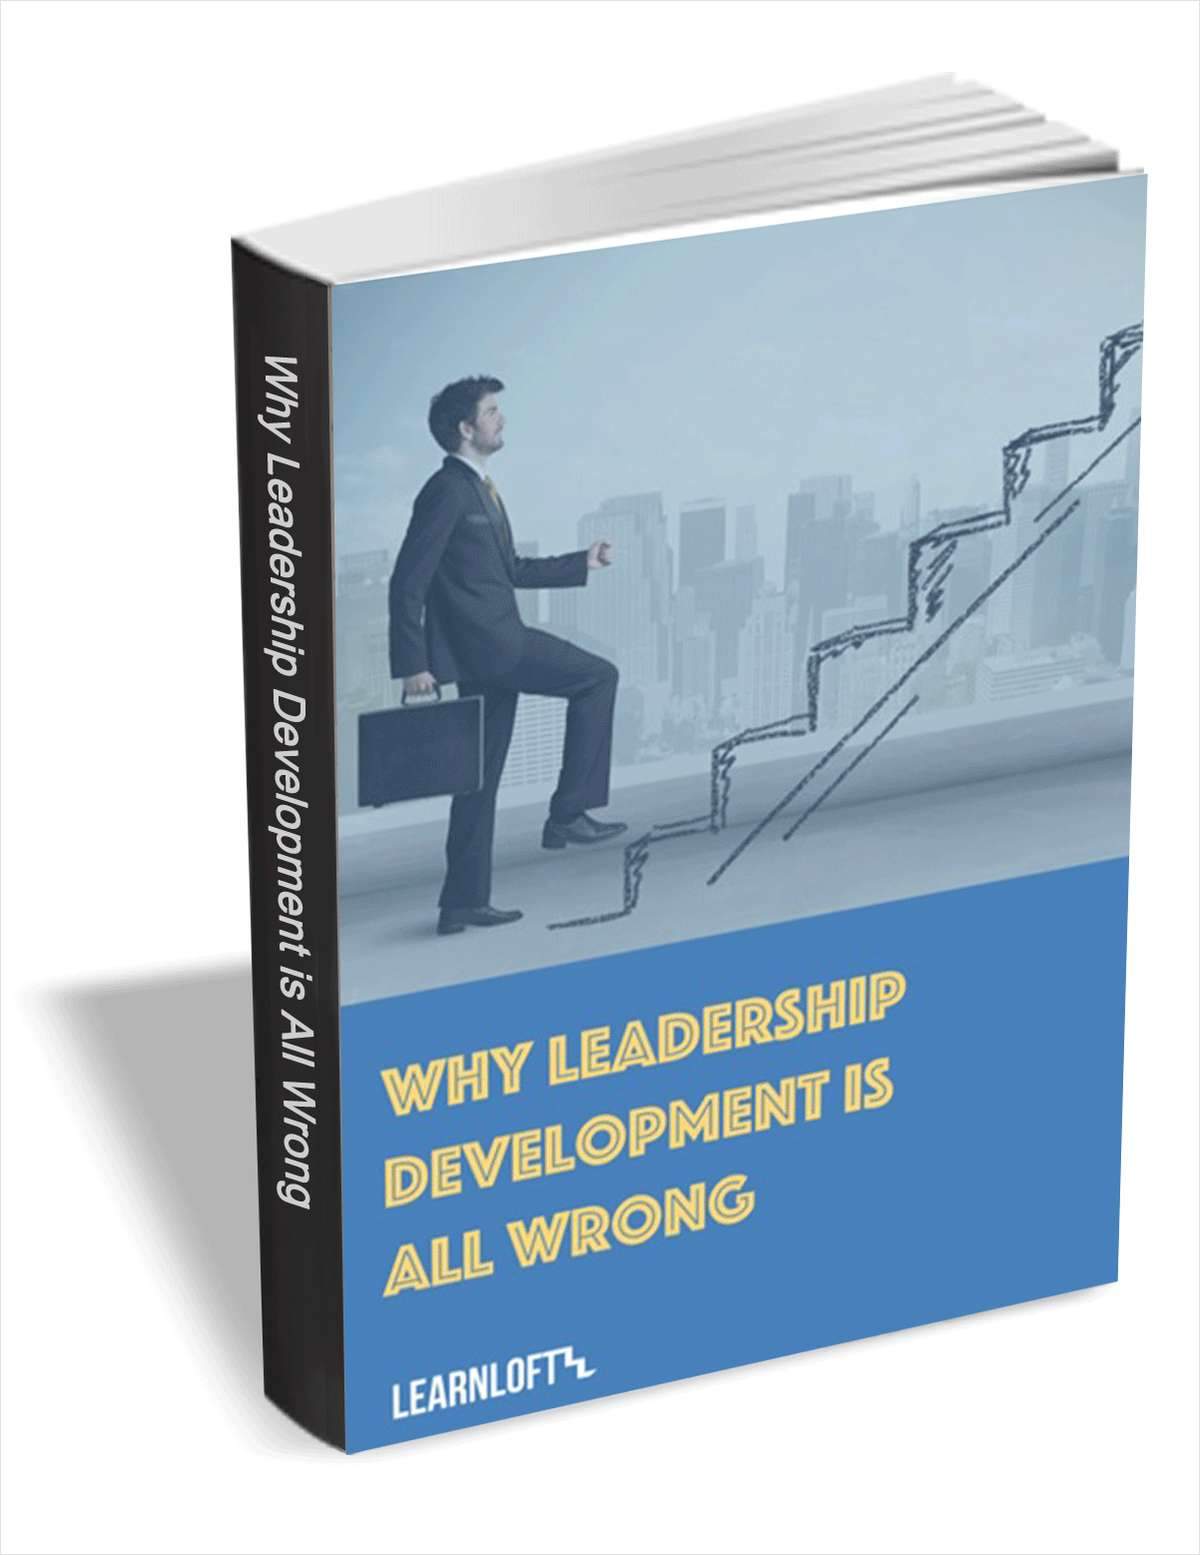 Why Leadership Development is All Wrong